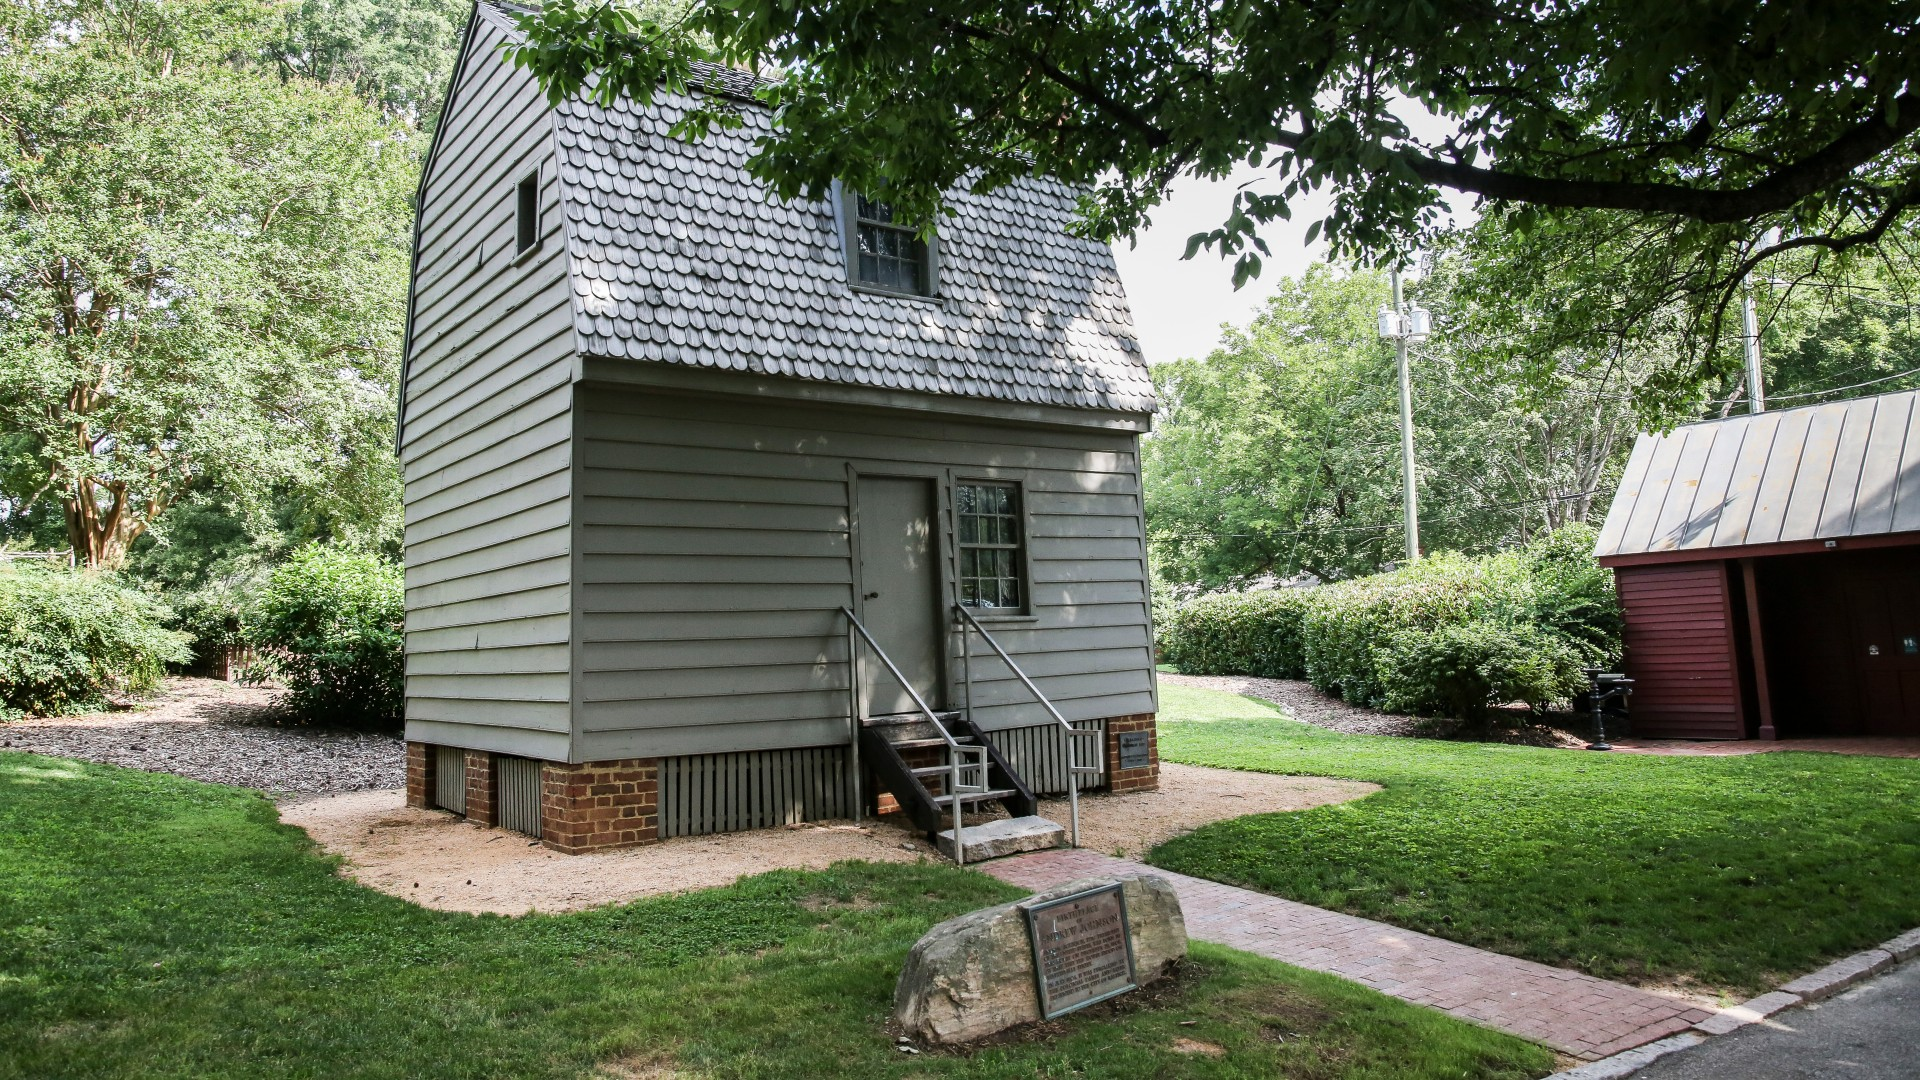 The birthplace of Andrew Johnson